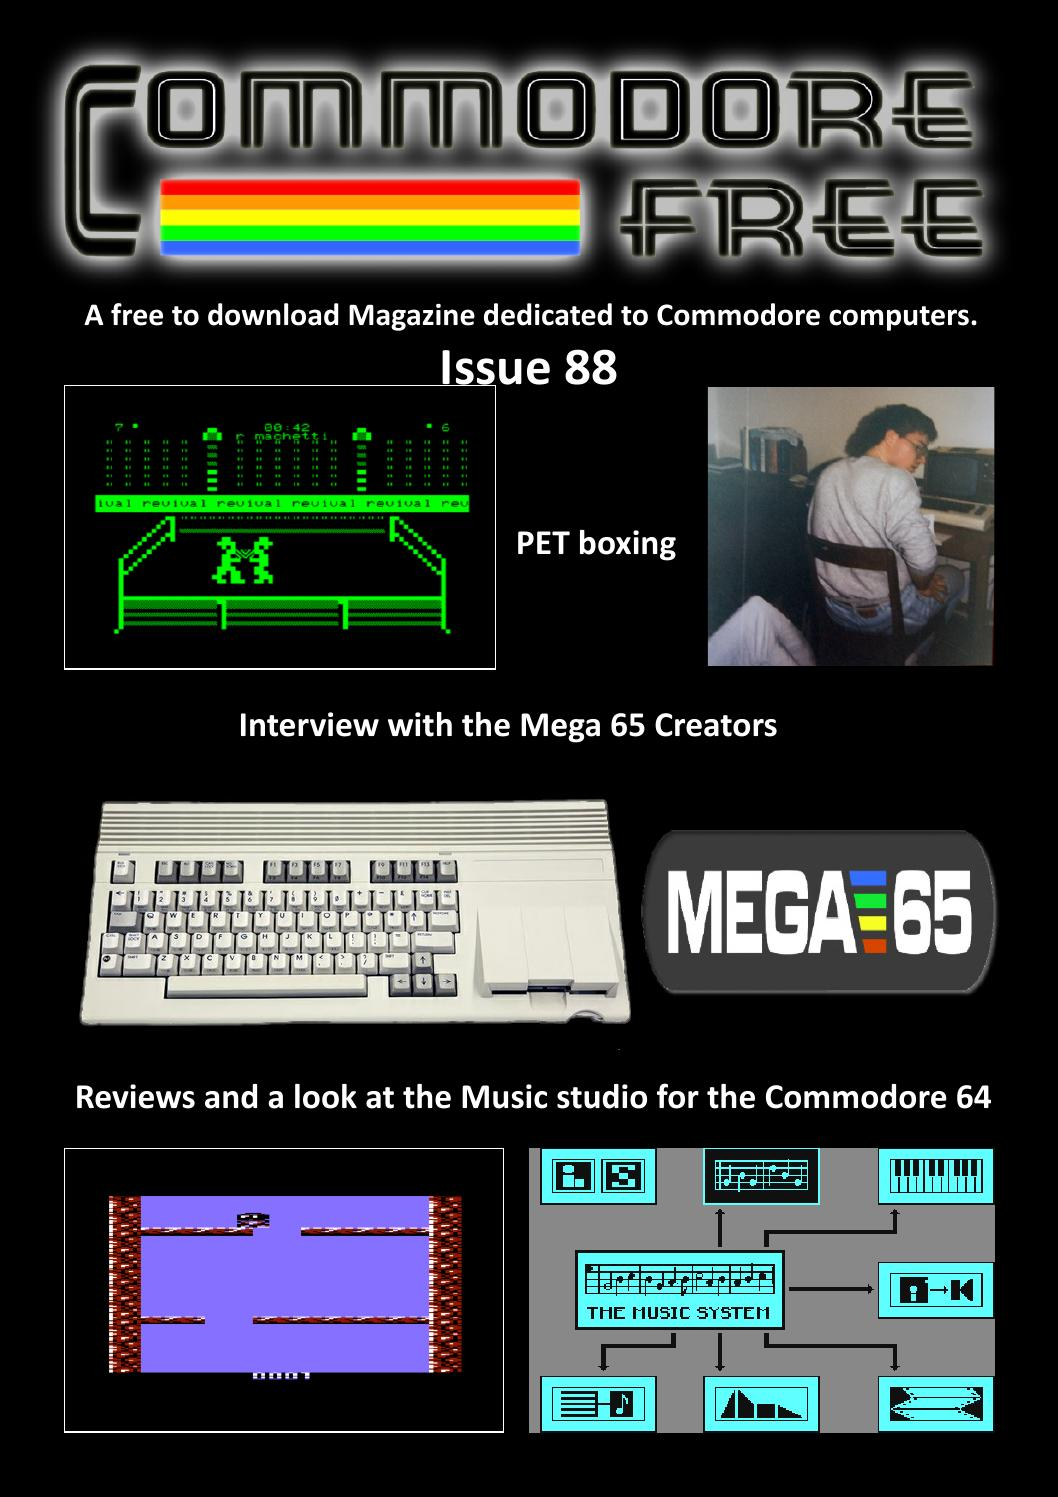 Commodore Free Issue 88 by Commodore Free Magazine - issuu